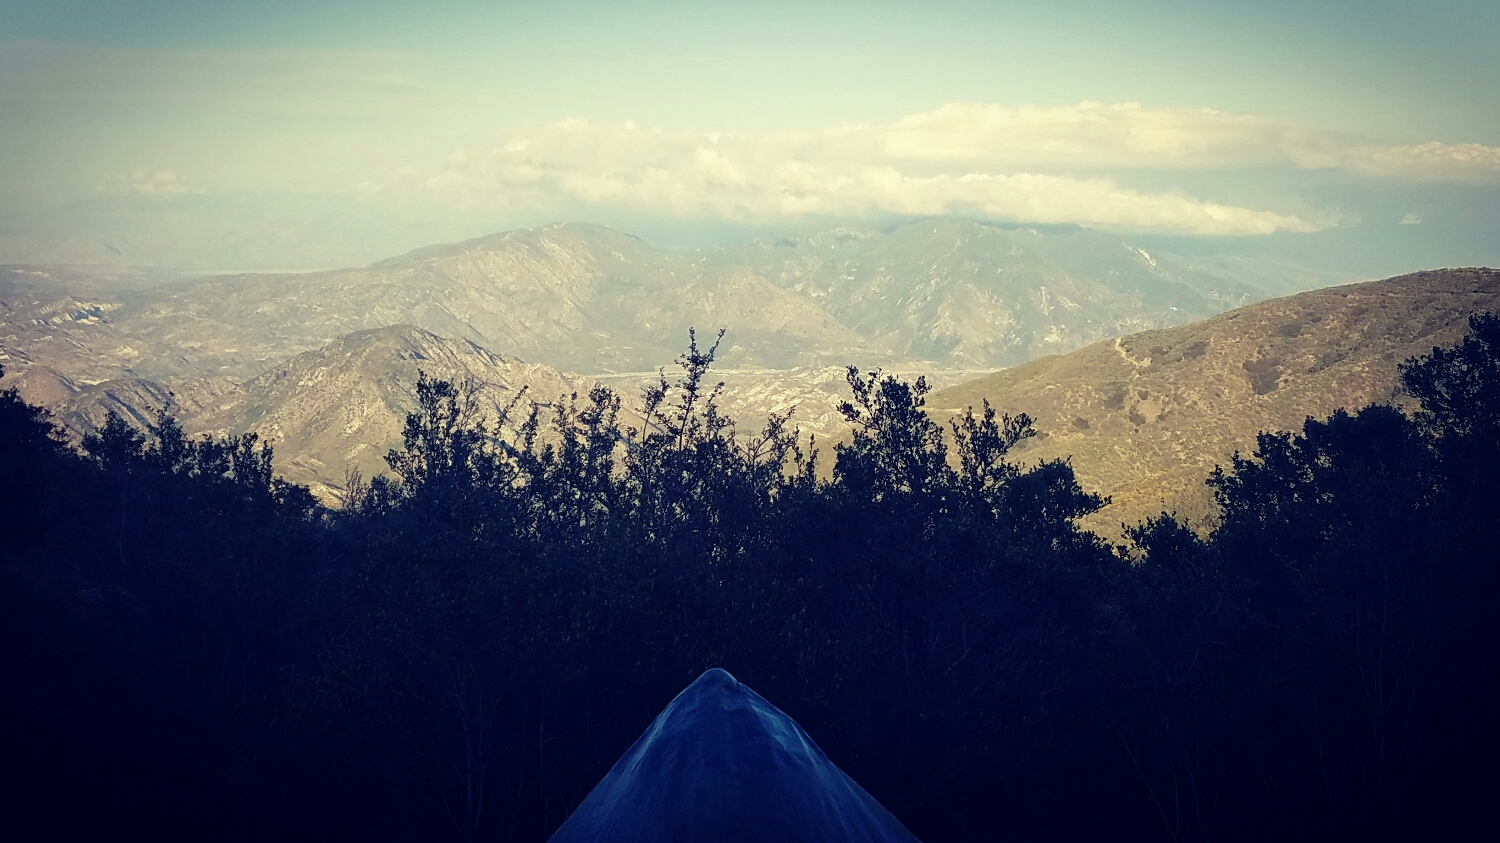 My view for the night! 12 miles outside Cajon Pass